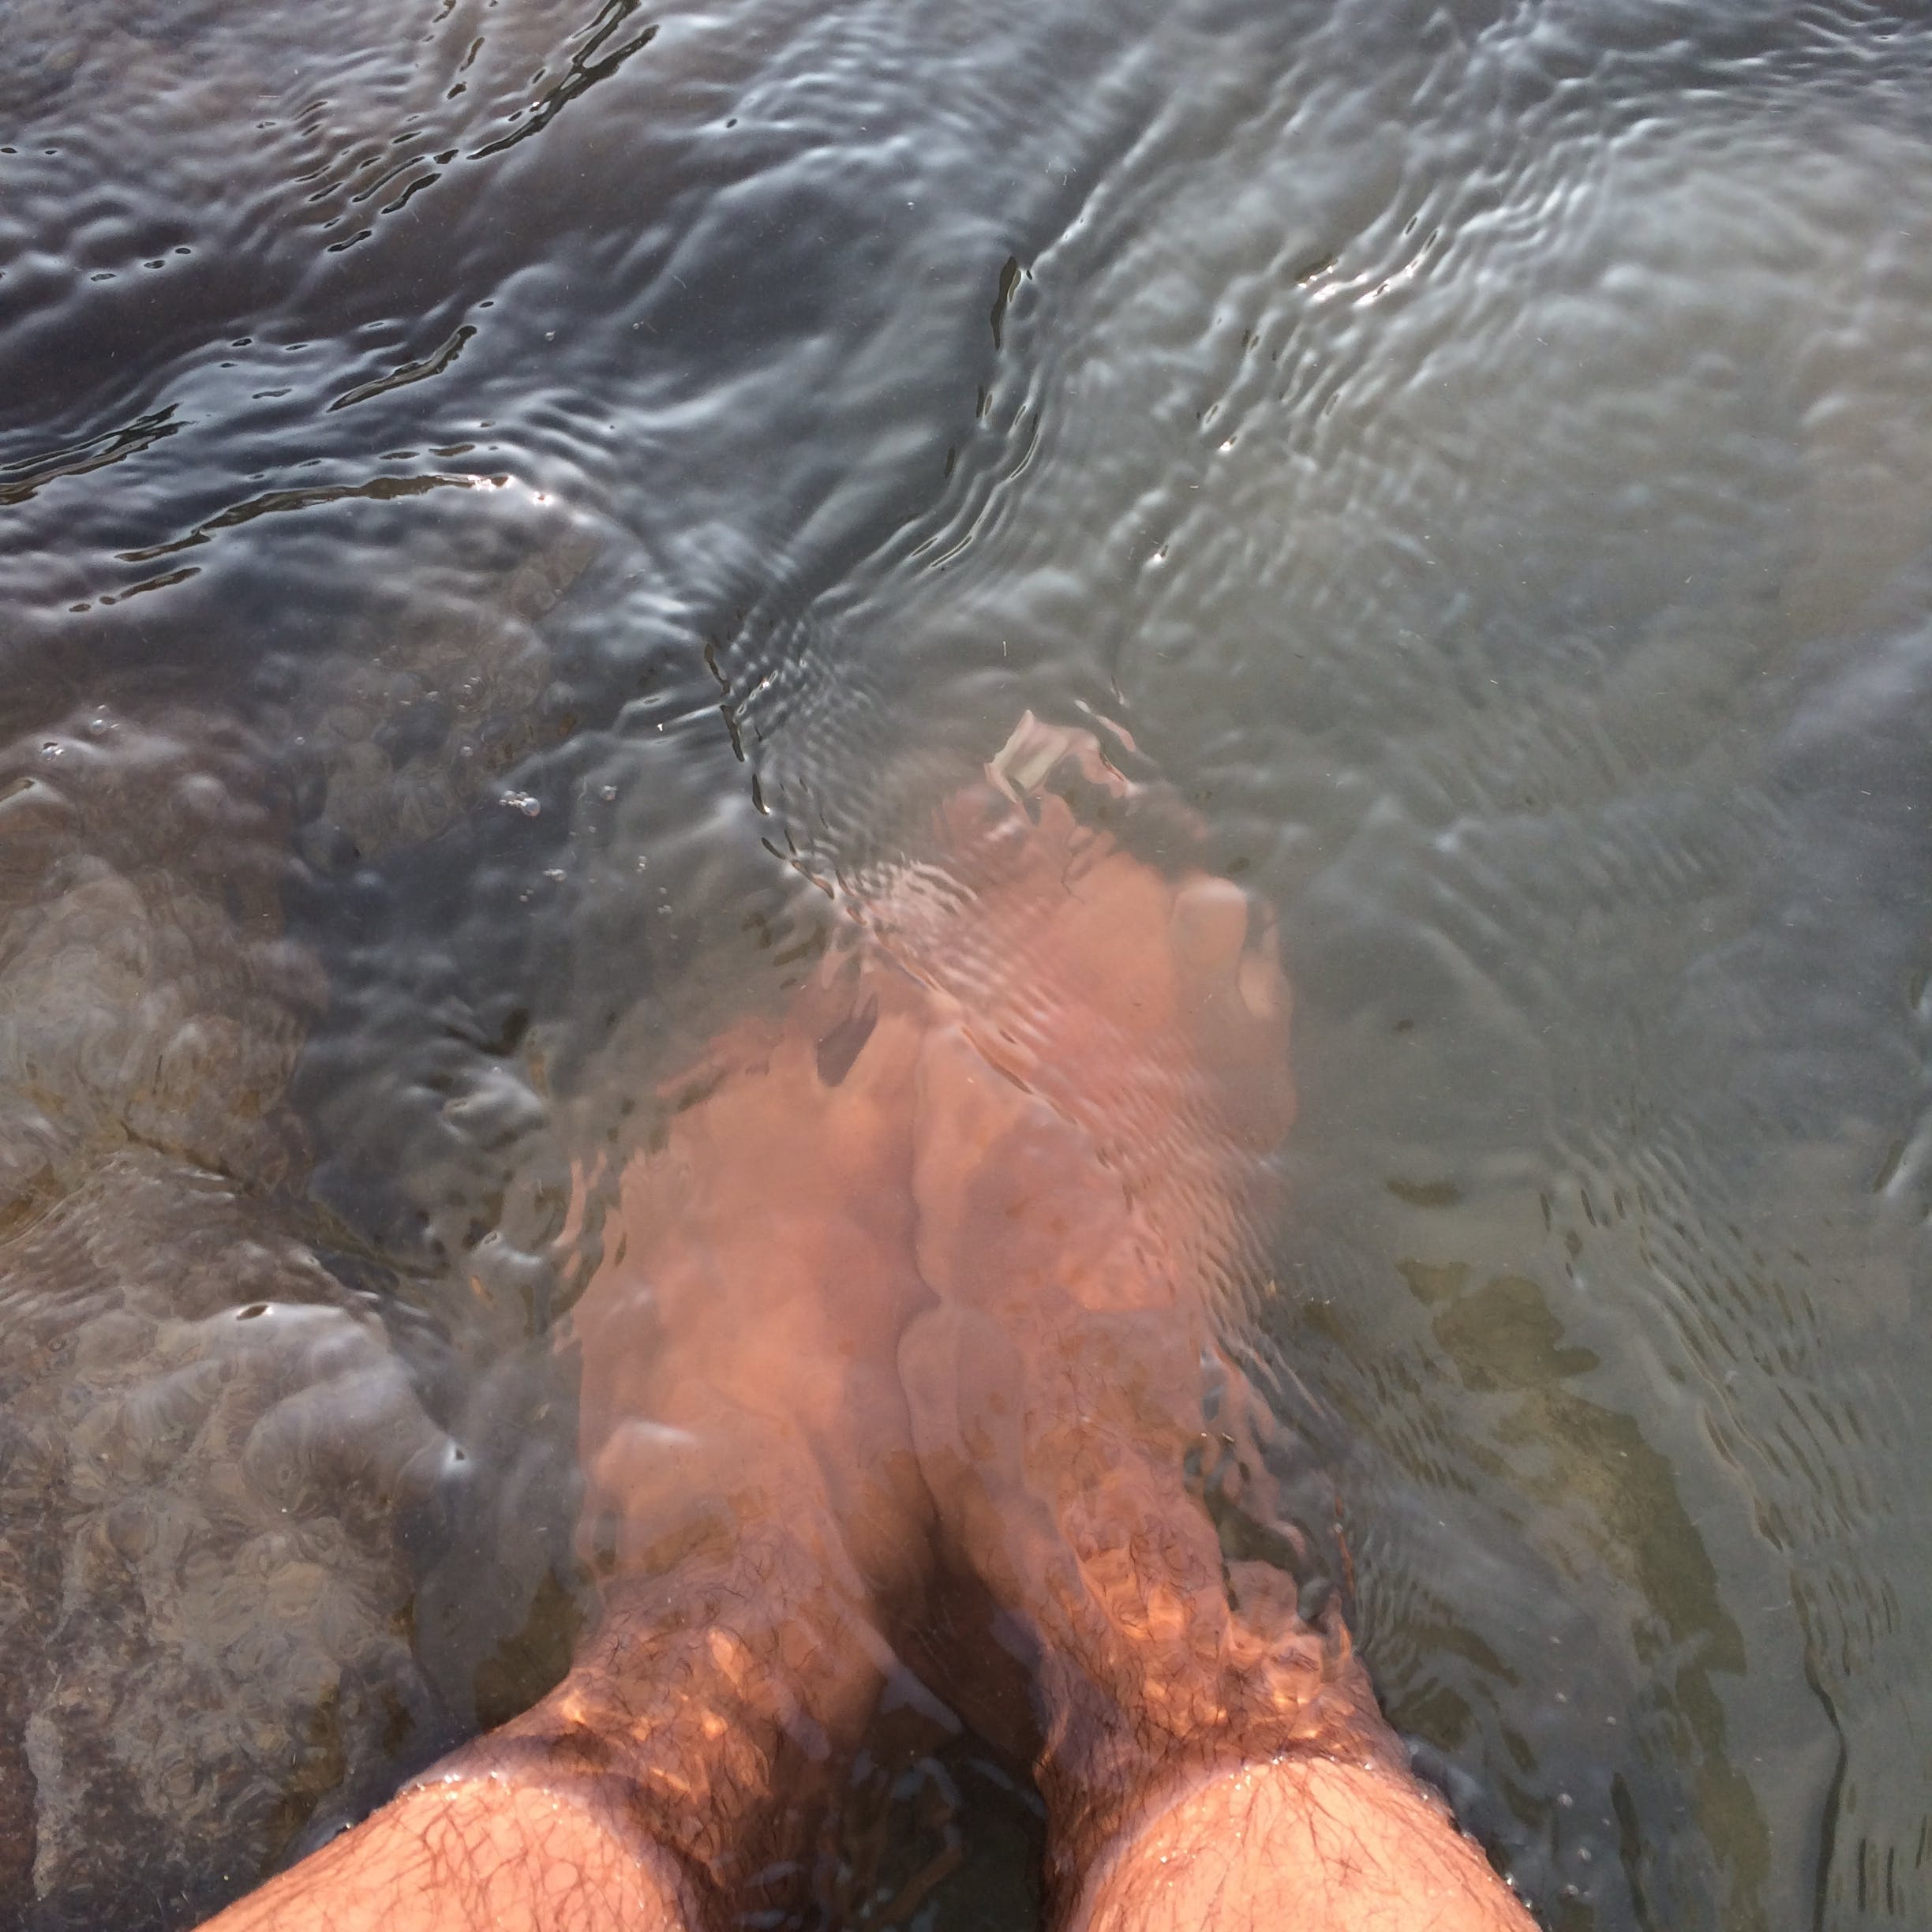 Free stock photo of bare feet, legs, water flow